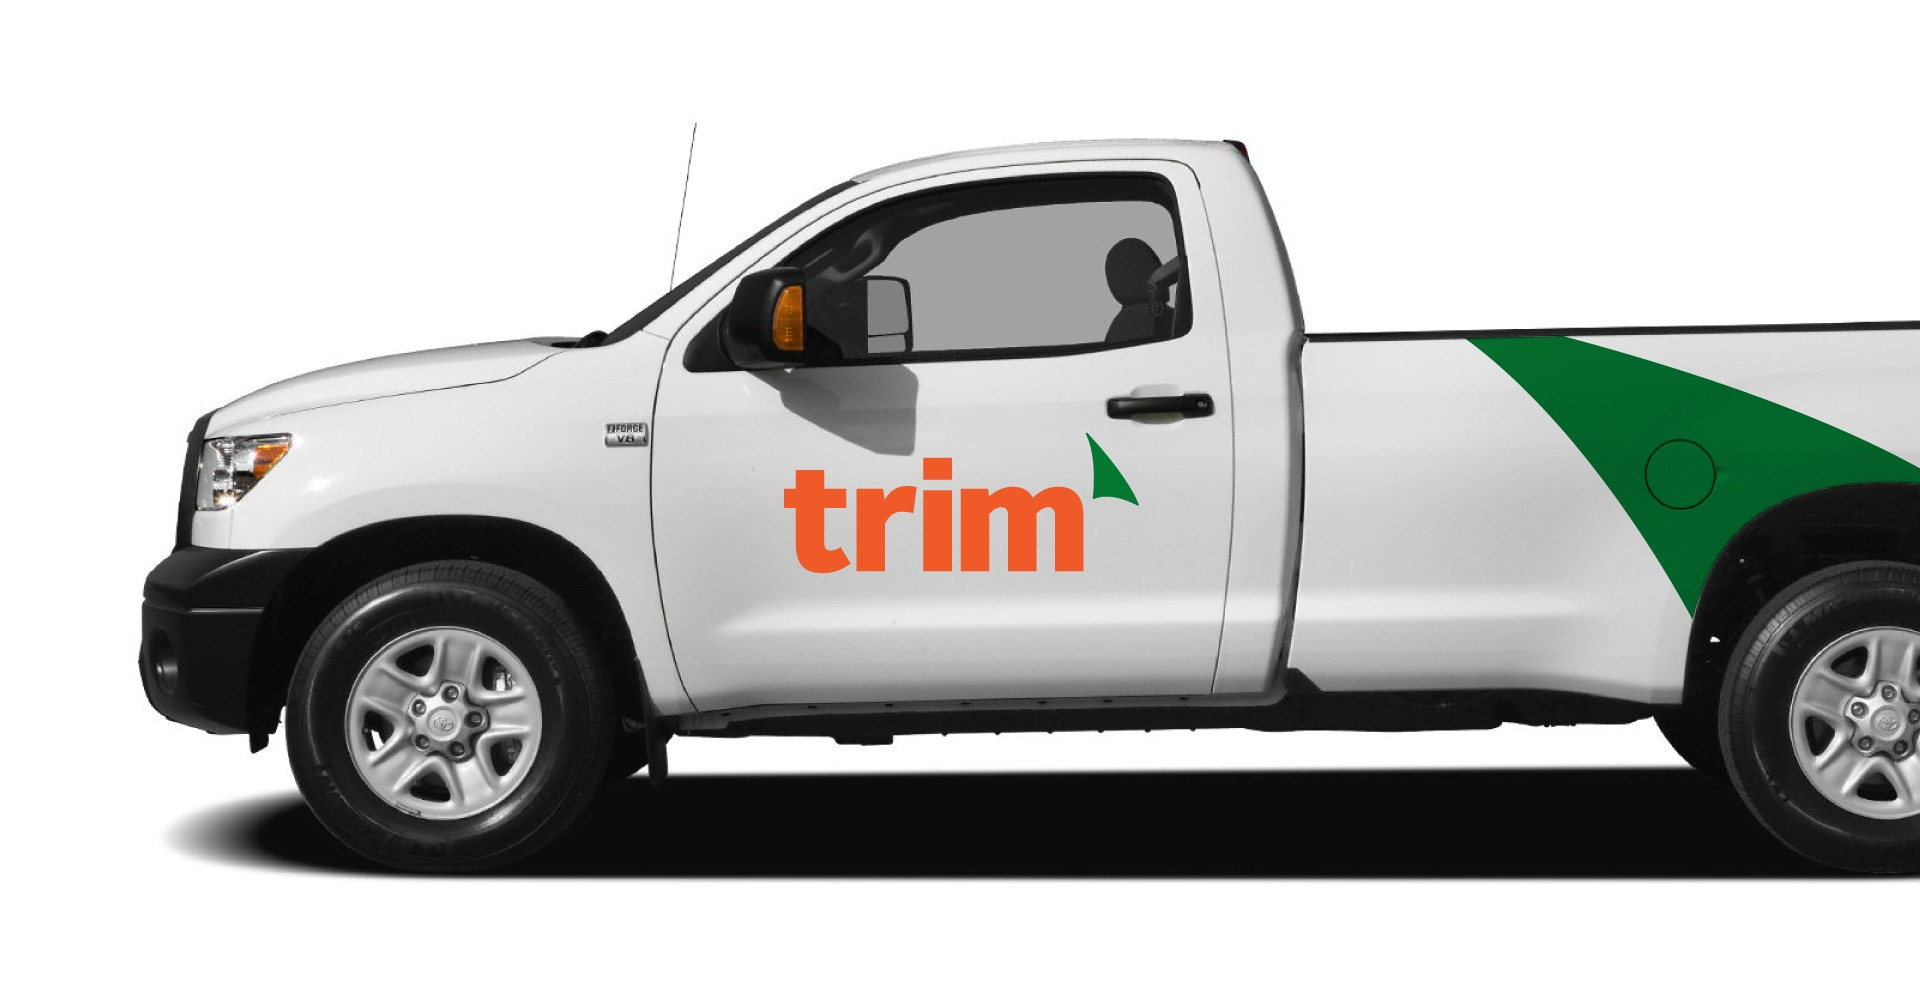 Trim Landscaping truck design and logo